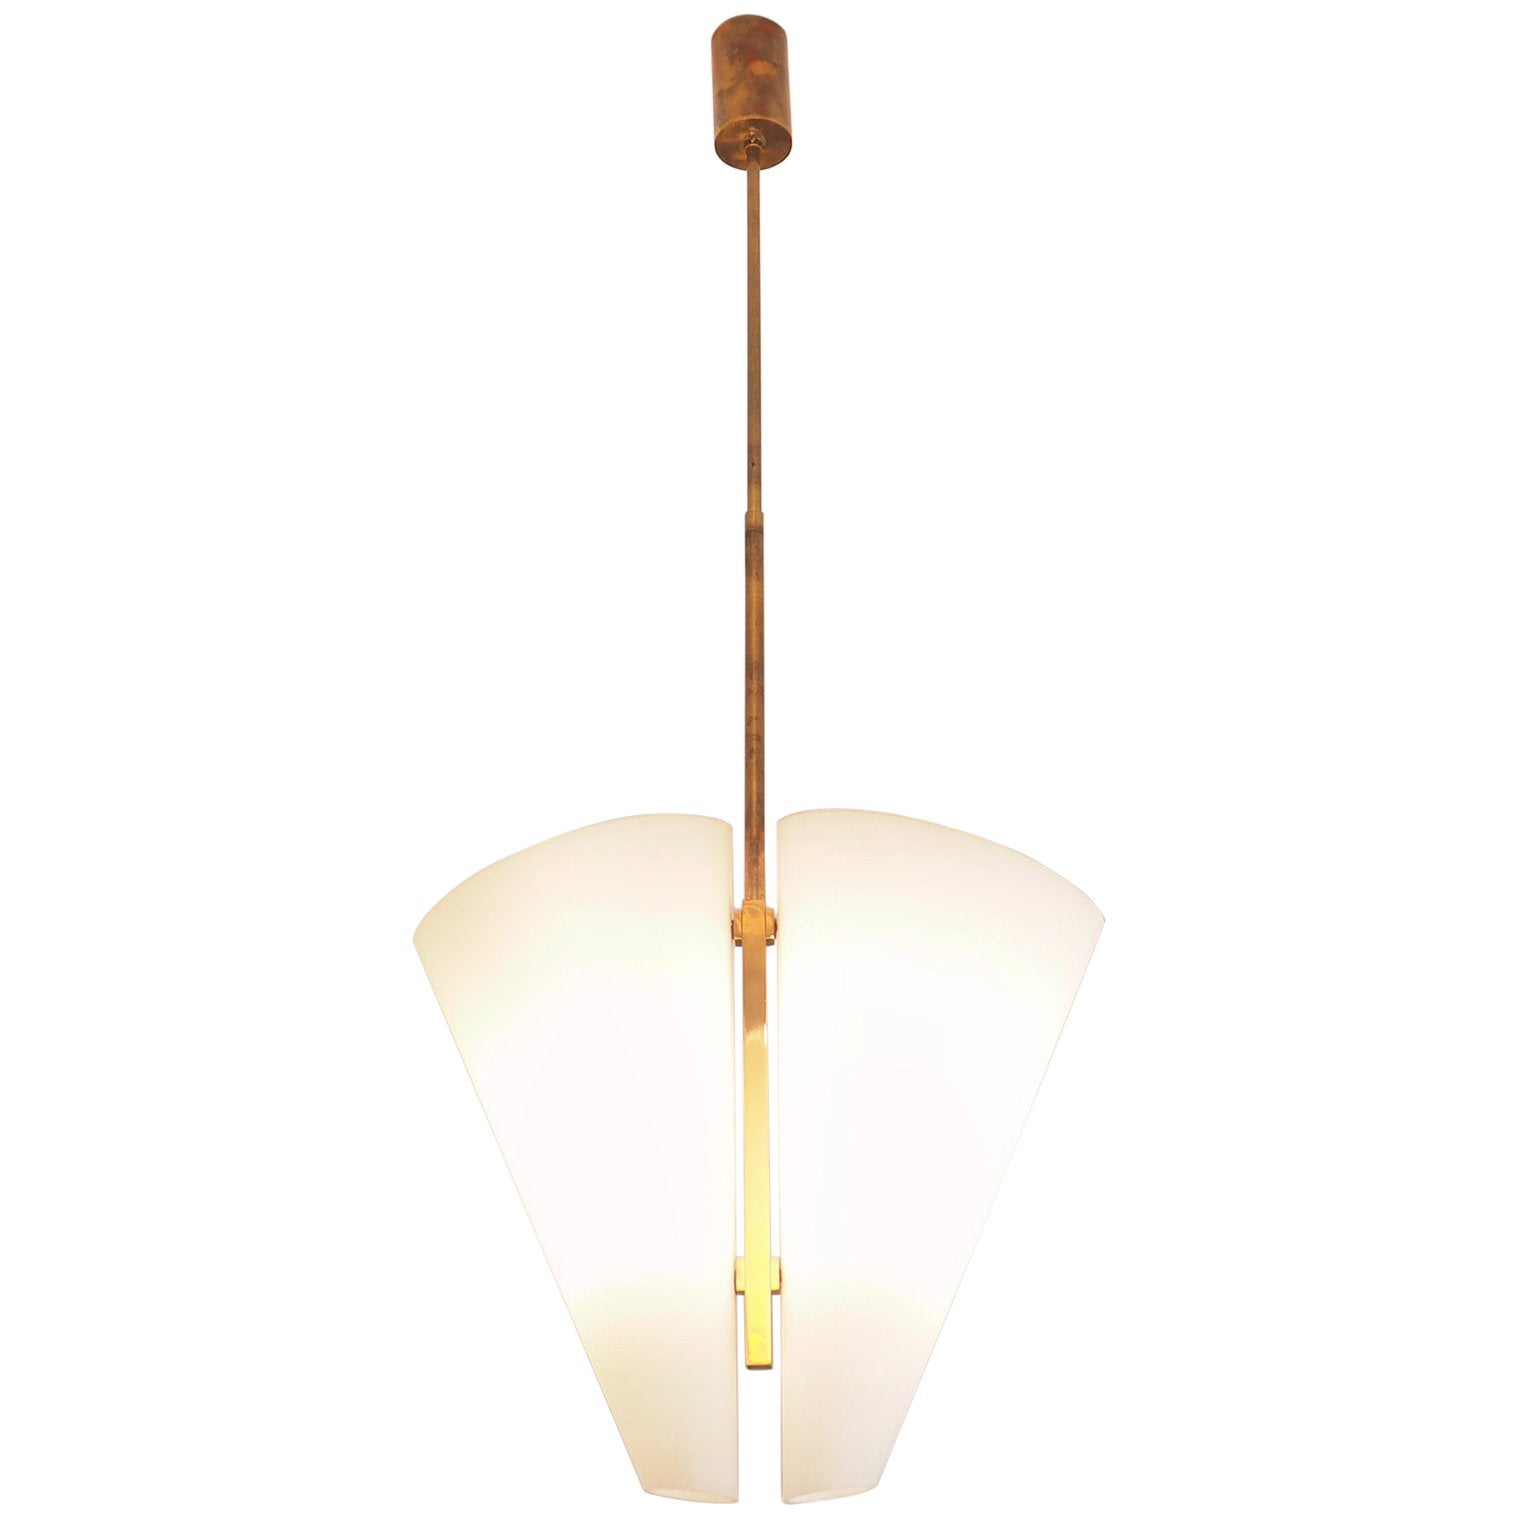 Max Ingrand Midcentury Brass and Glass Chandelier for Fontana Arte ...